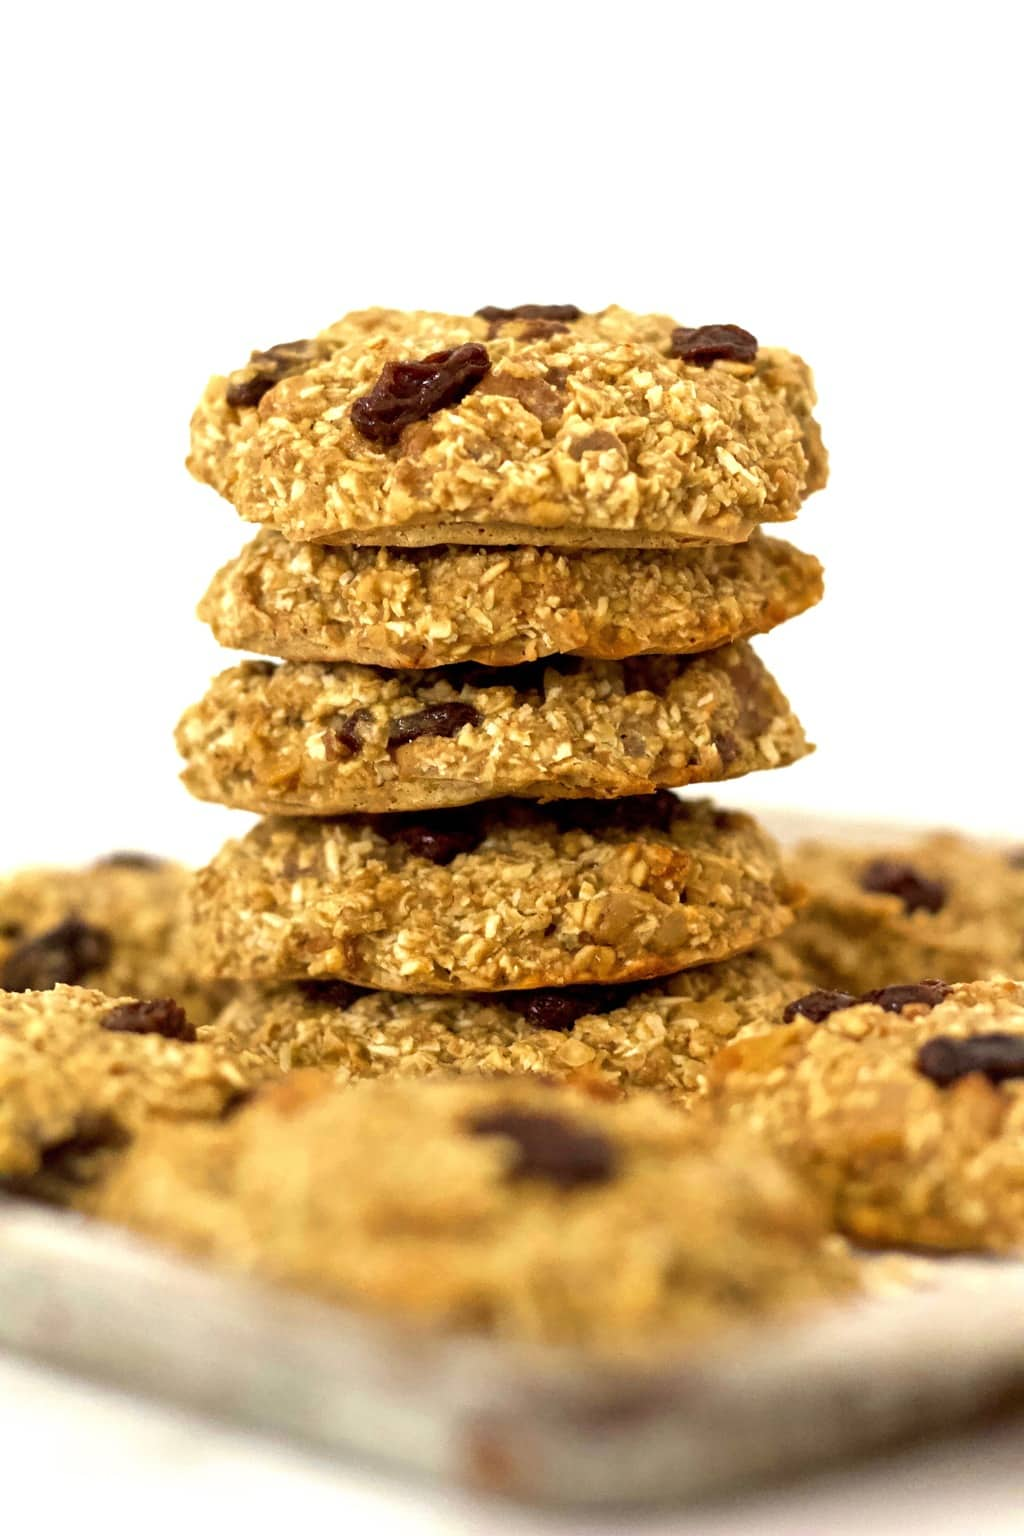 Healthy & delicious Vegan Trail Mix Cookies that are made with amazing, wholesome ingredients. They are gluten-free, low-carb, dairy-free, oil-free & made with no added sugar. The perfect dessert or snack!